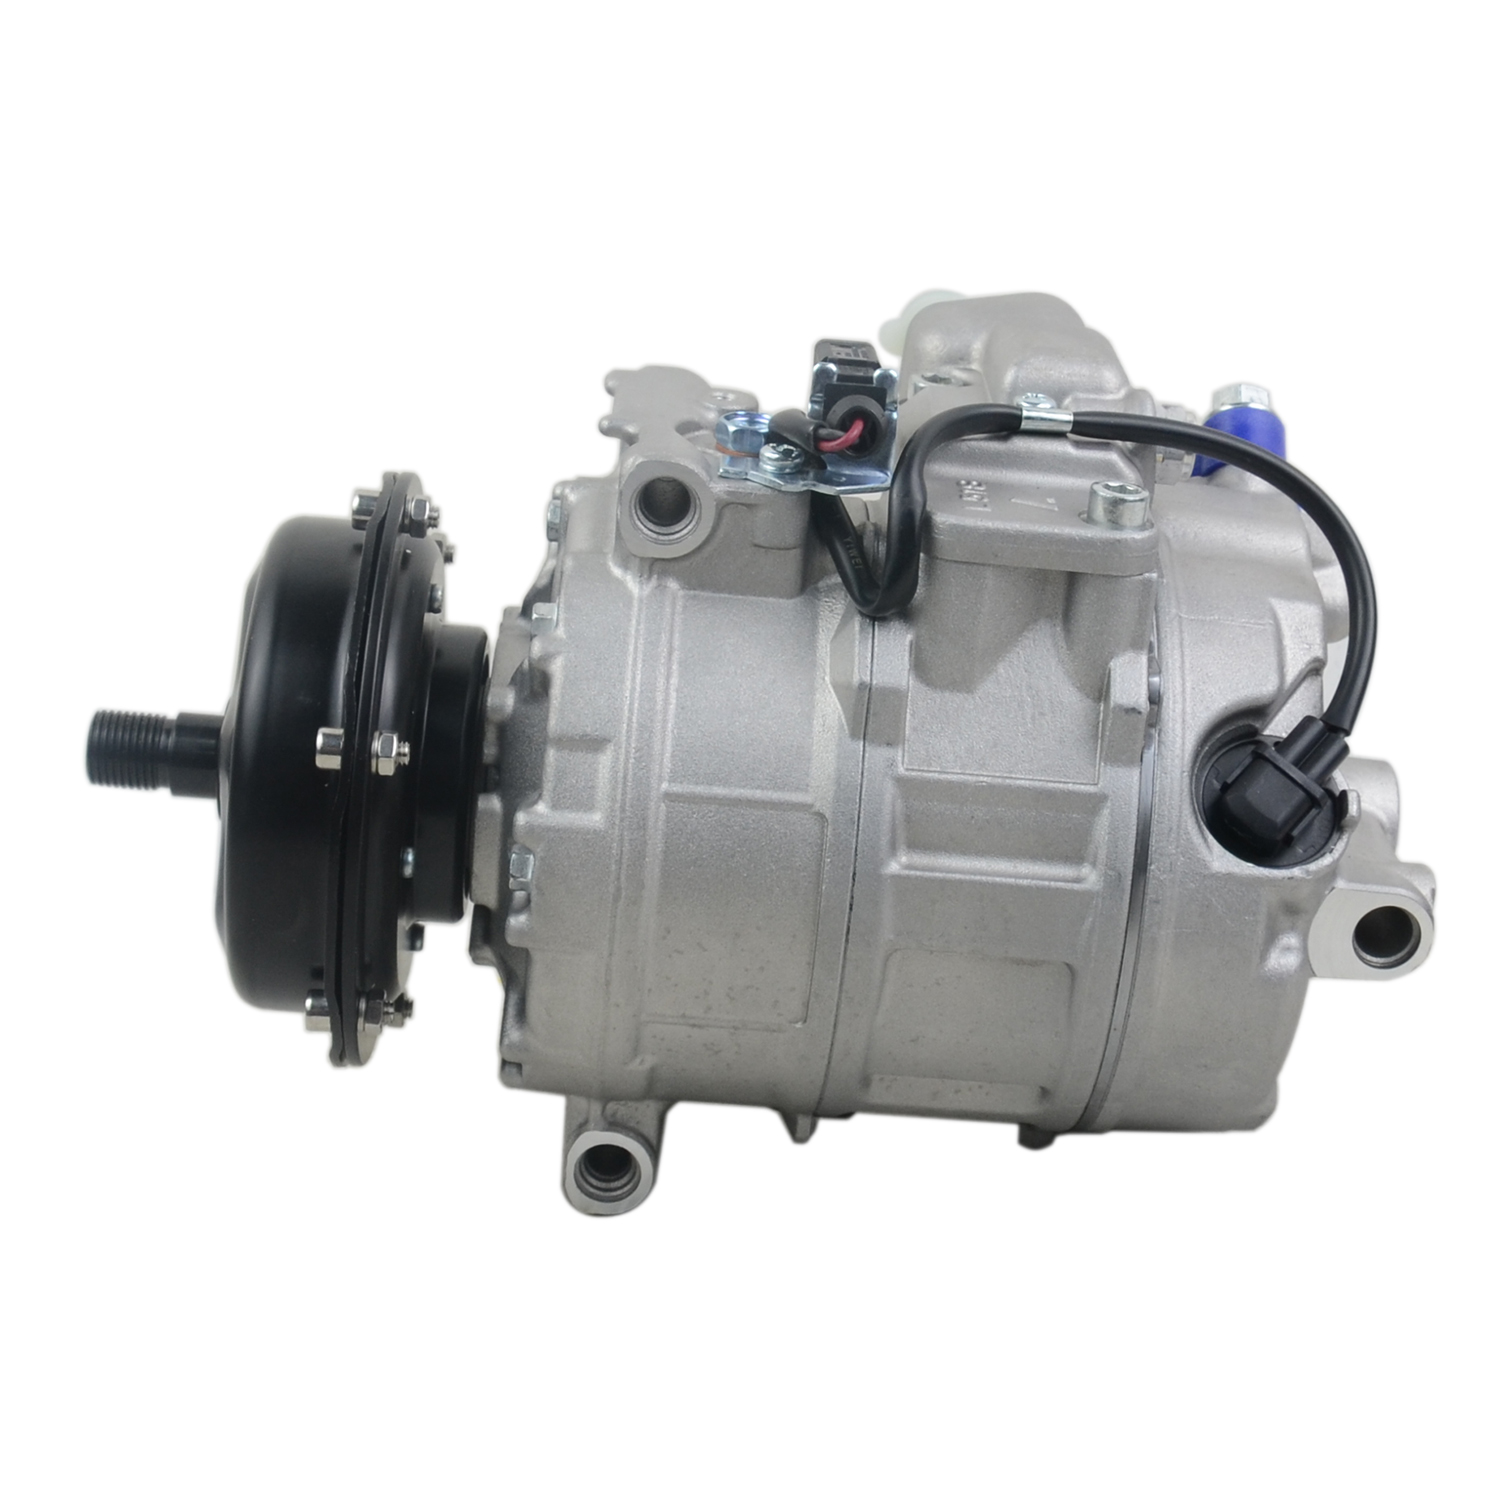 AP01 Air conditioning compressor For <font><b>VW</b></font> <font><b>Touareg</b></font> <font><b>2.5</b></font> <font><b>TDI</b></font> 5.0 <font><b>TDI</b></font> 3D0820805 image